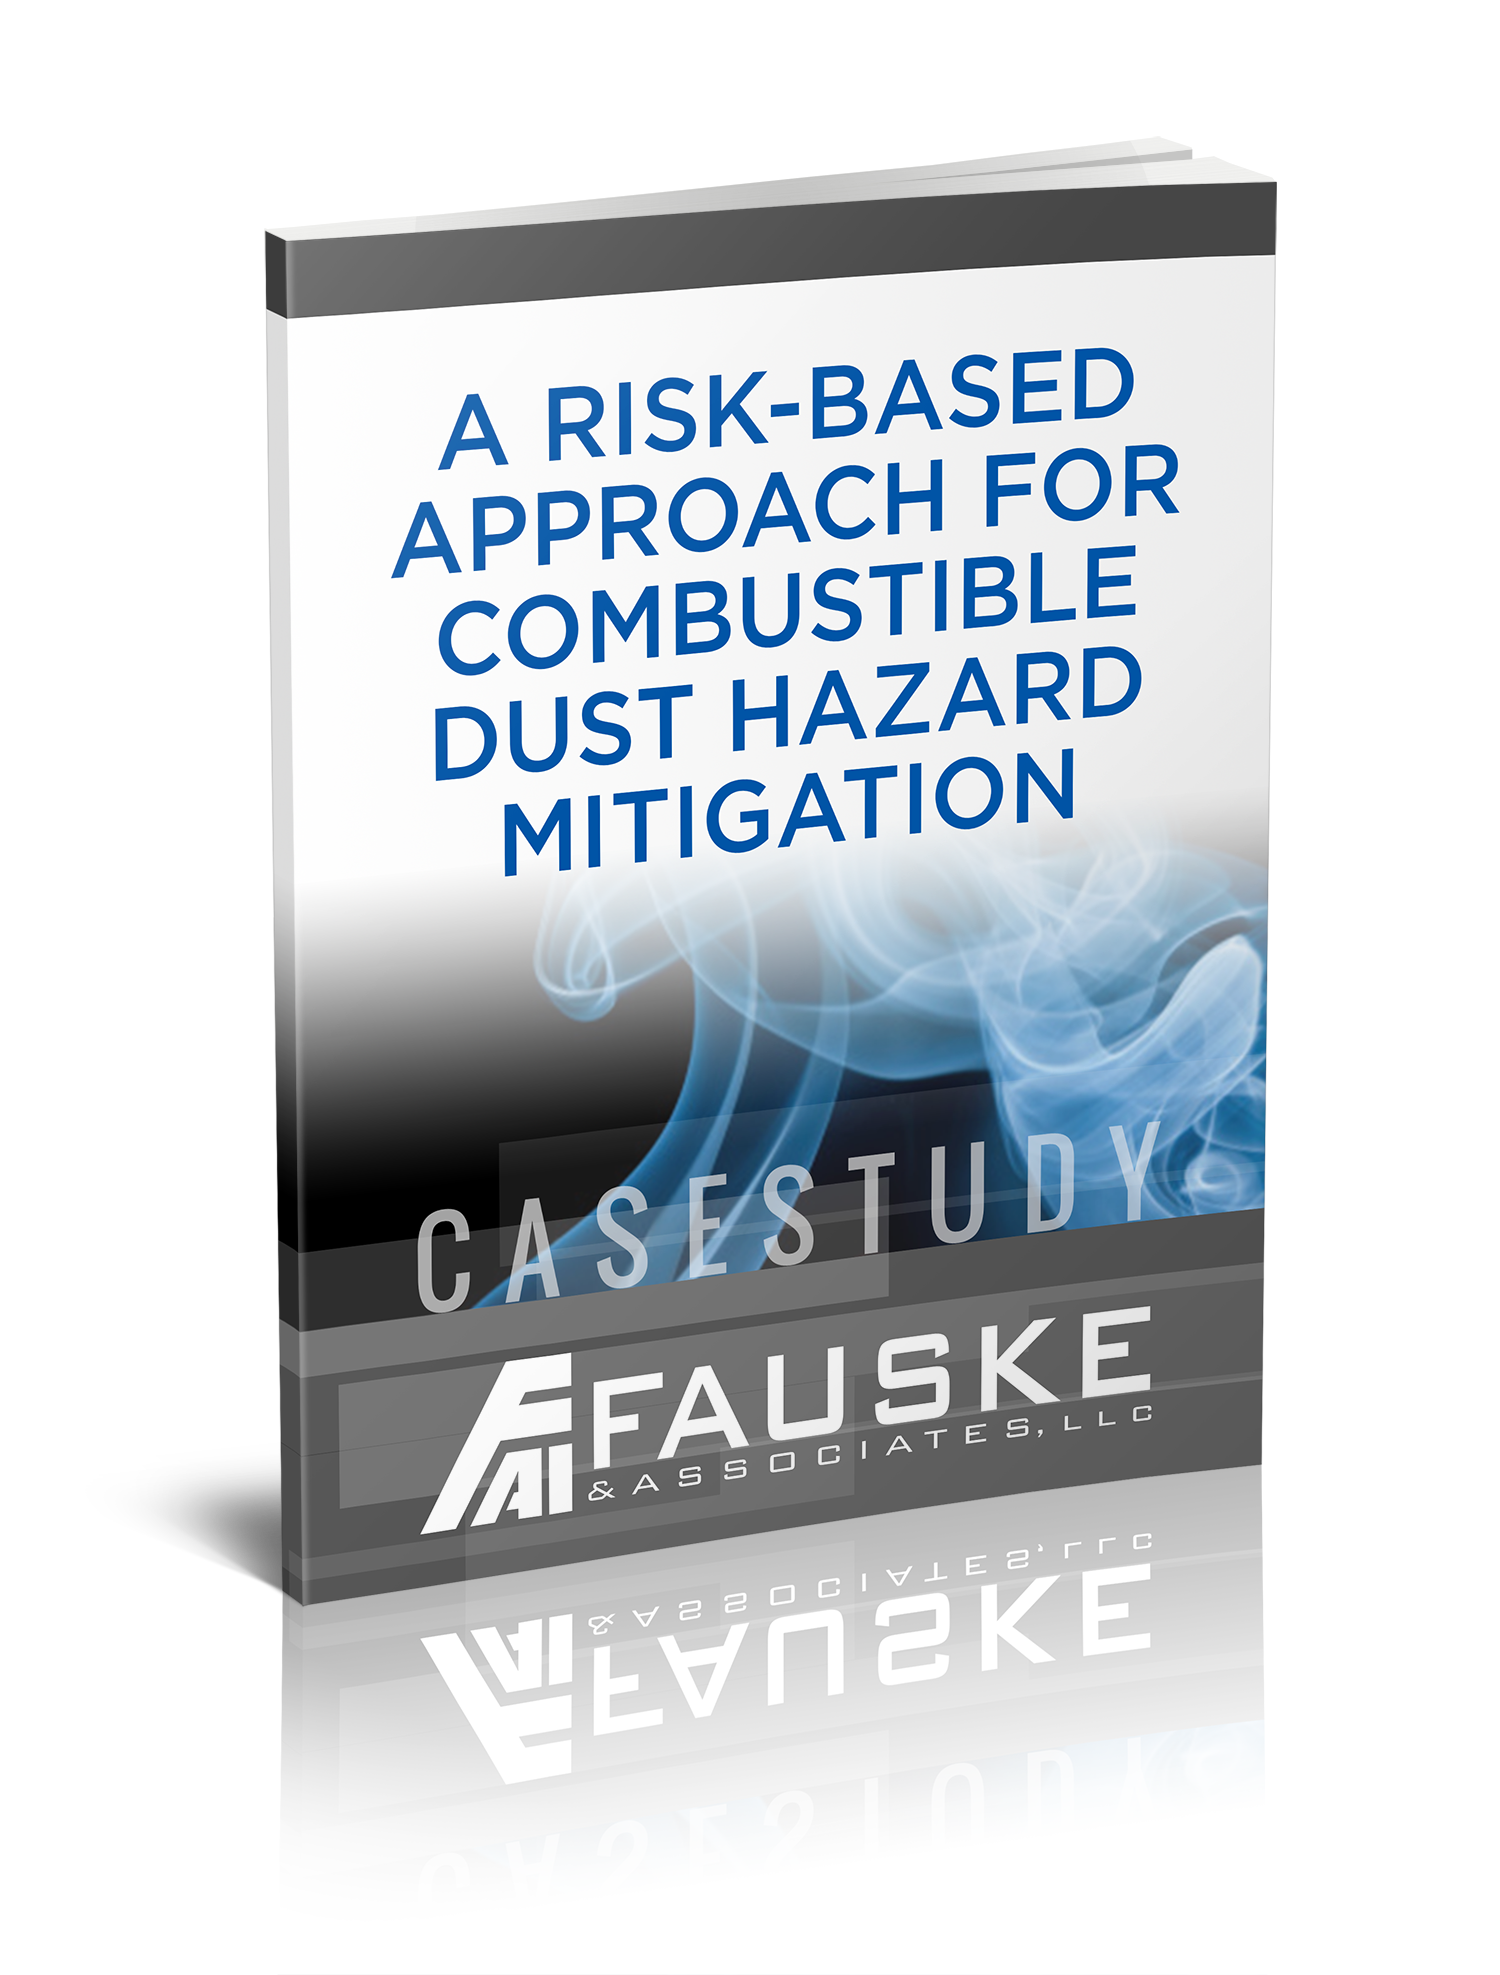 A Risk Based Approach For Combustible Dust Hazard Mitigation